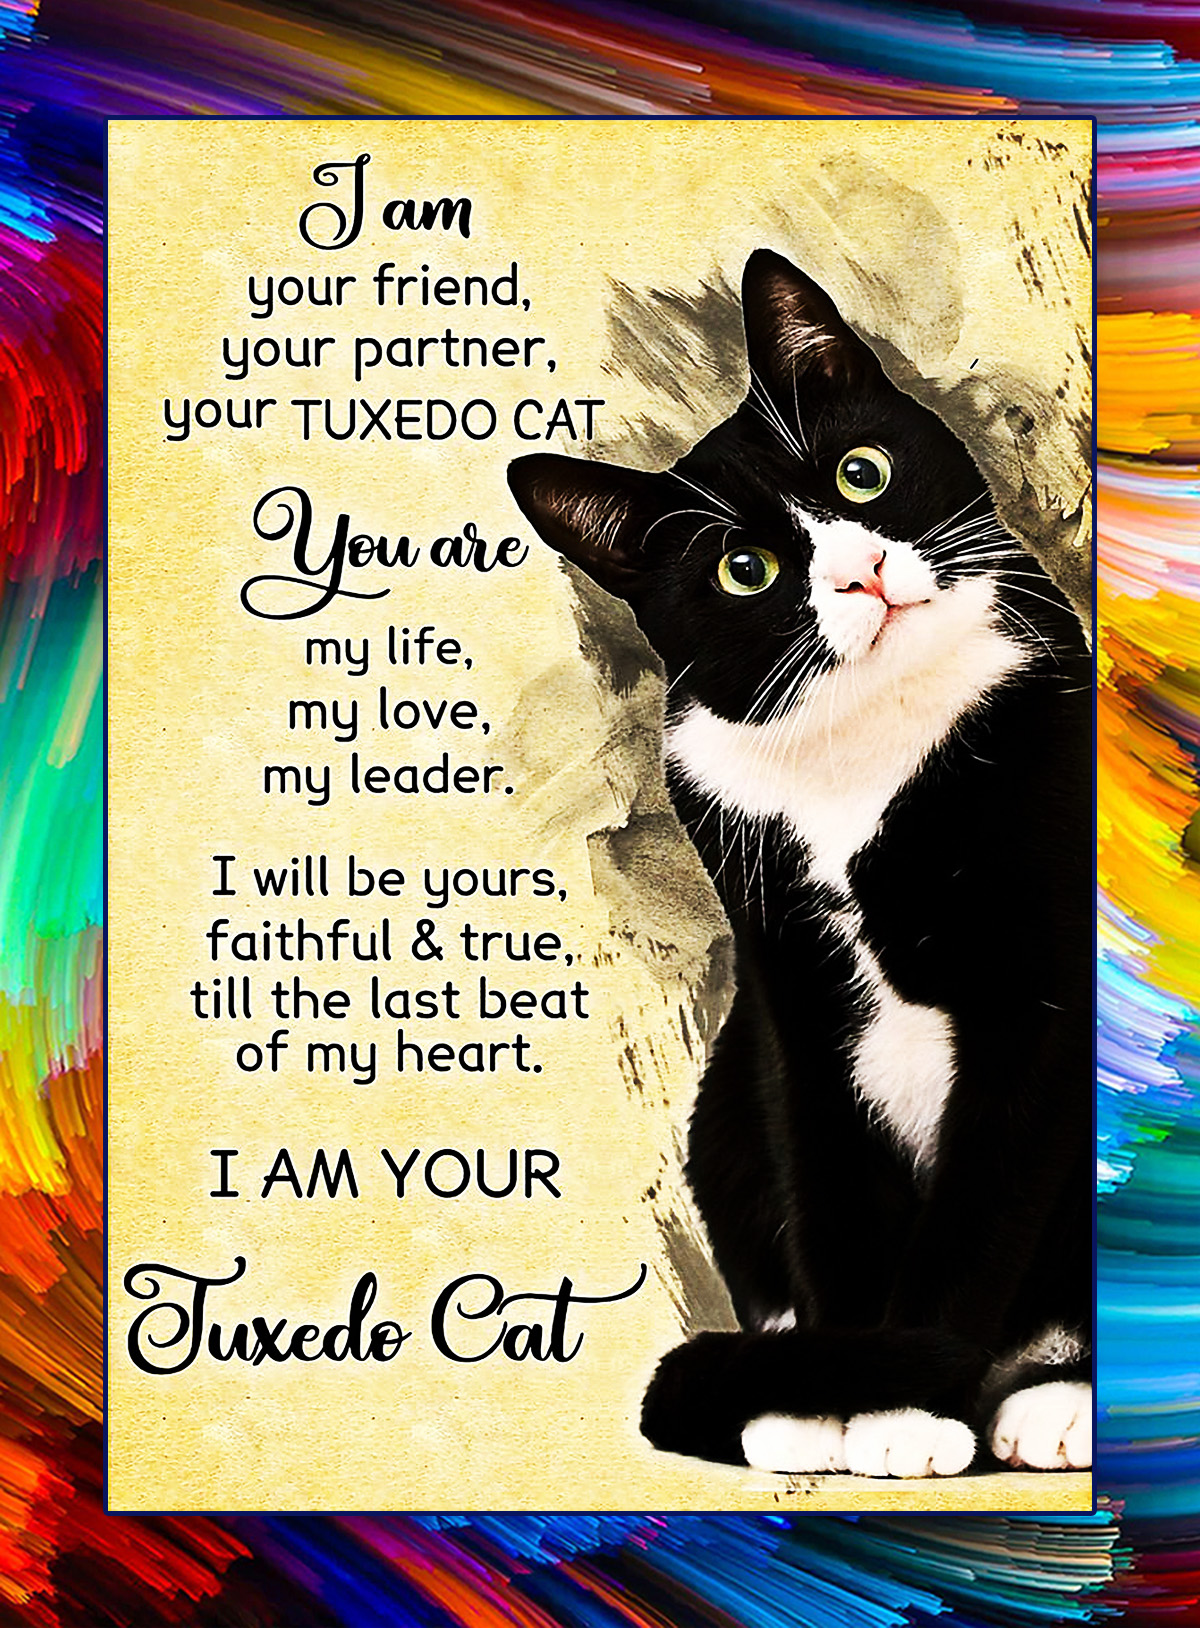 I am your friend tuxedo cat poster - A4